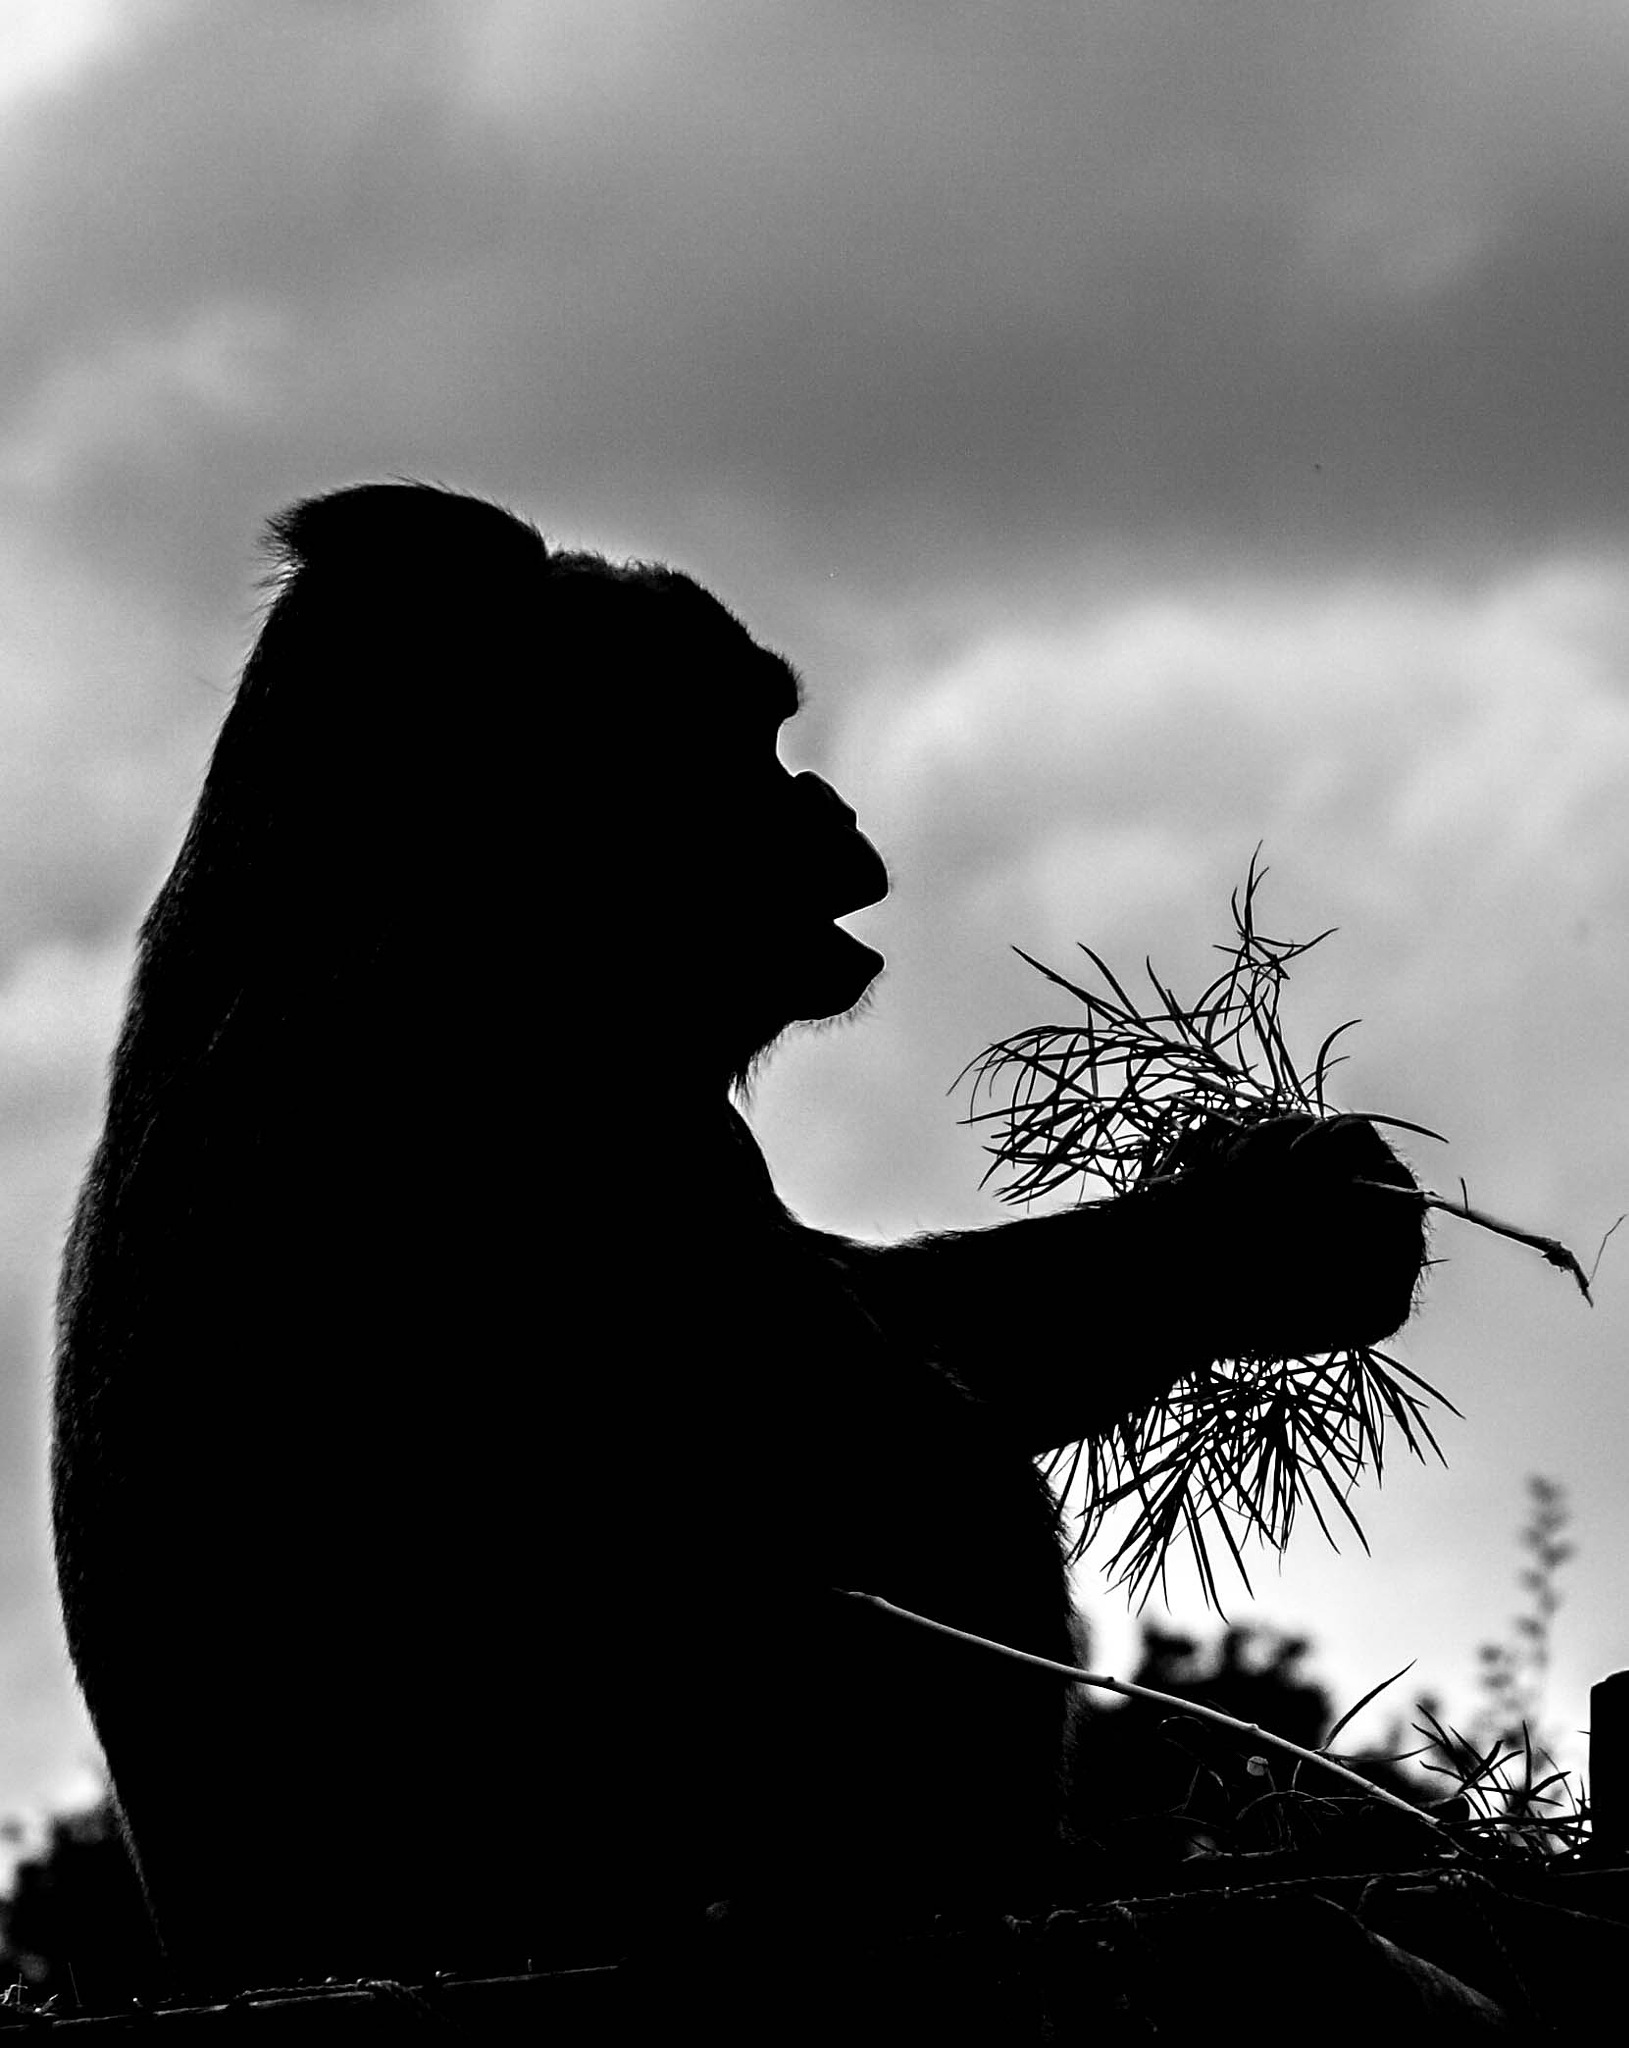 Gorilla silhouette by garry-chisholm1